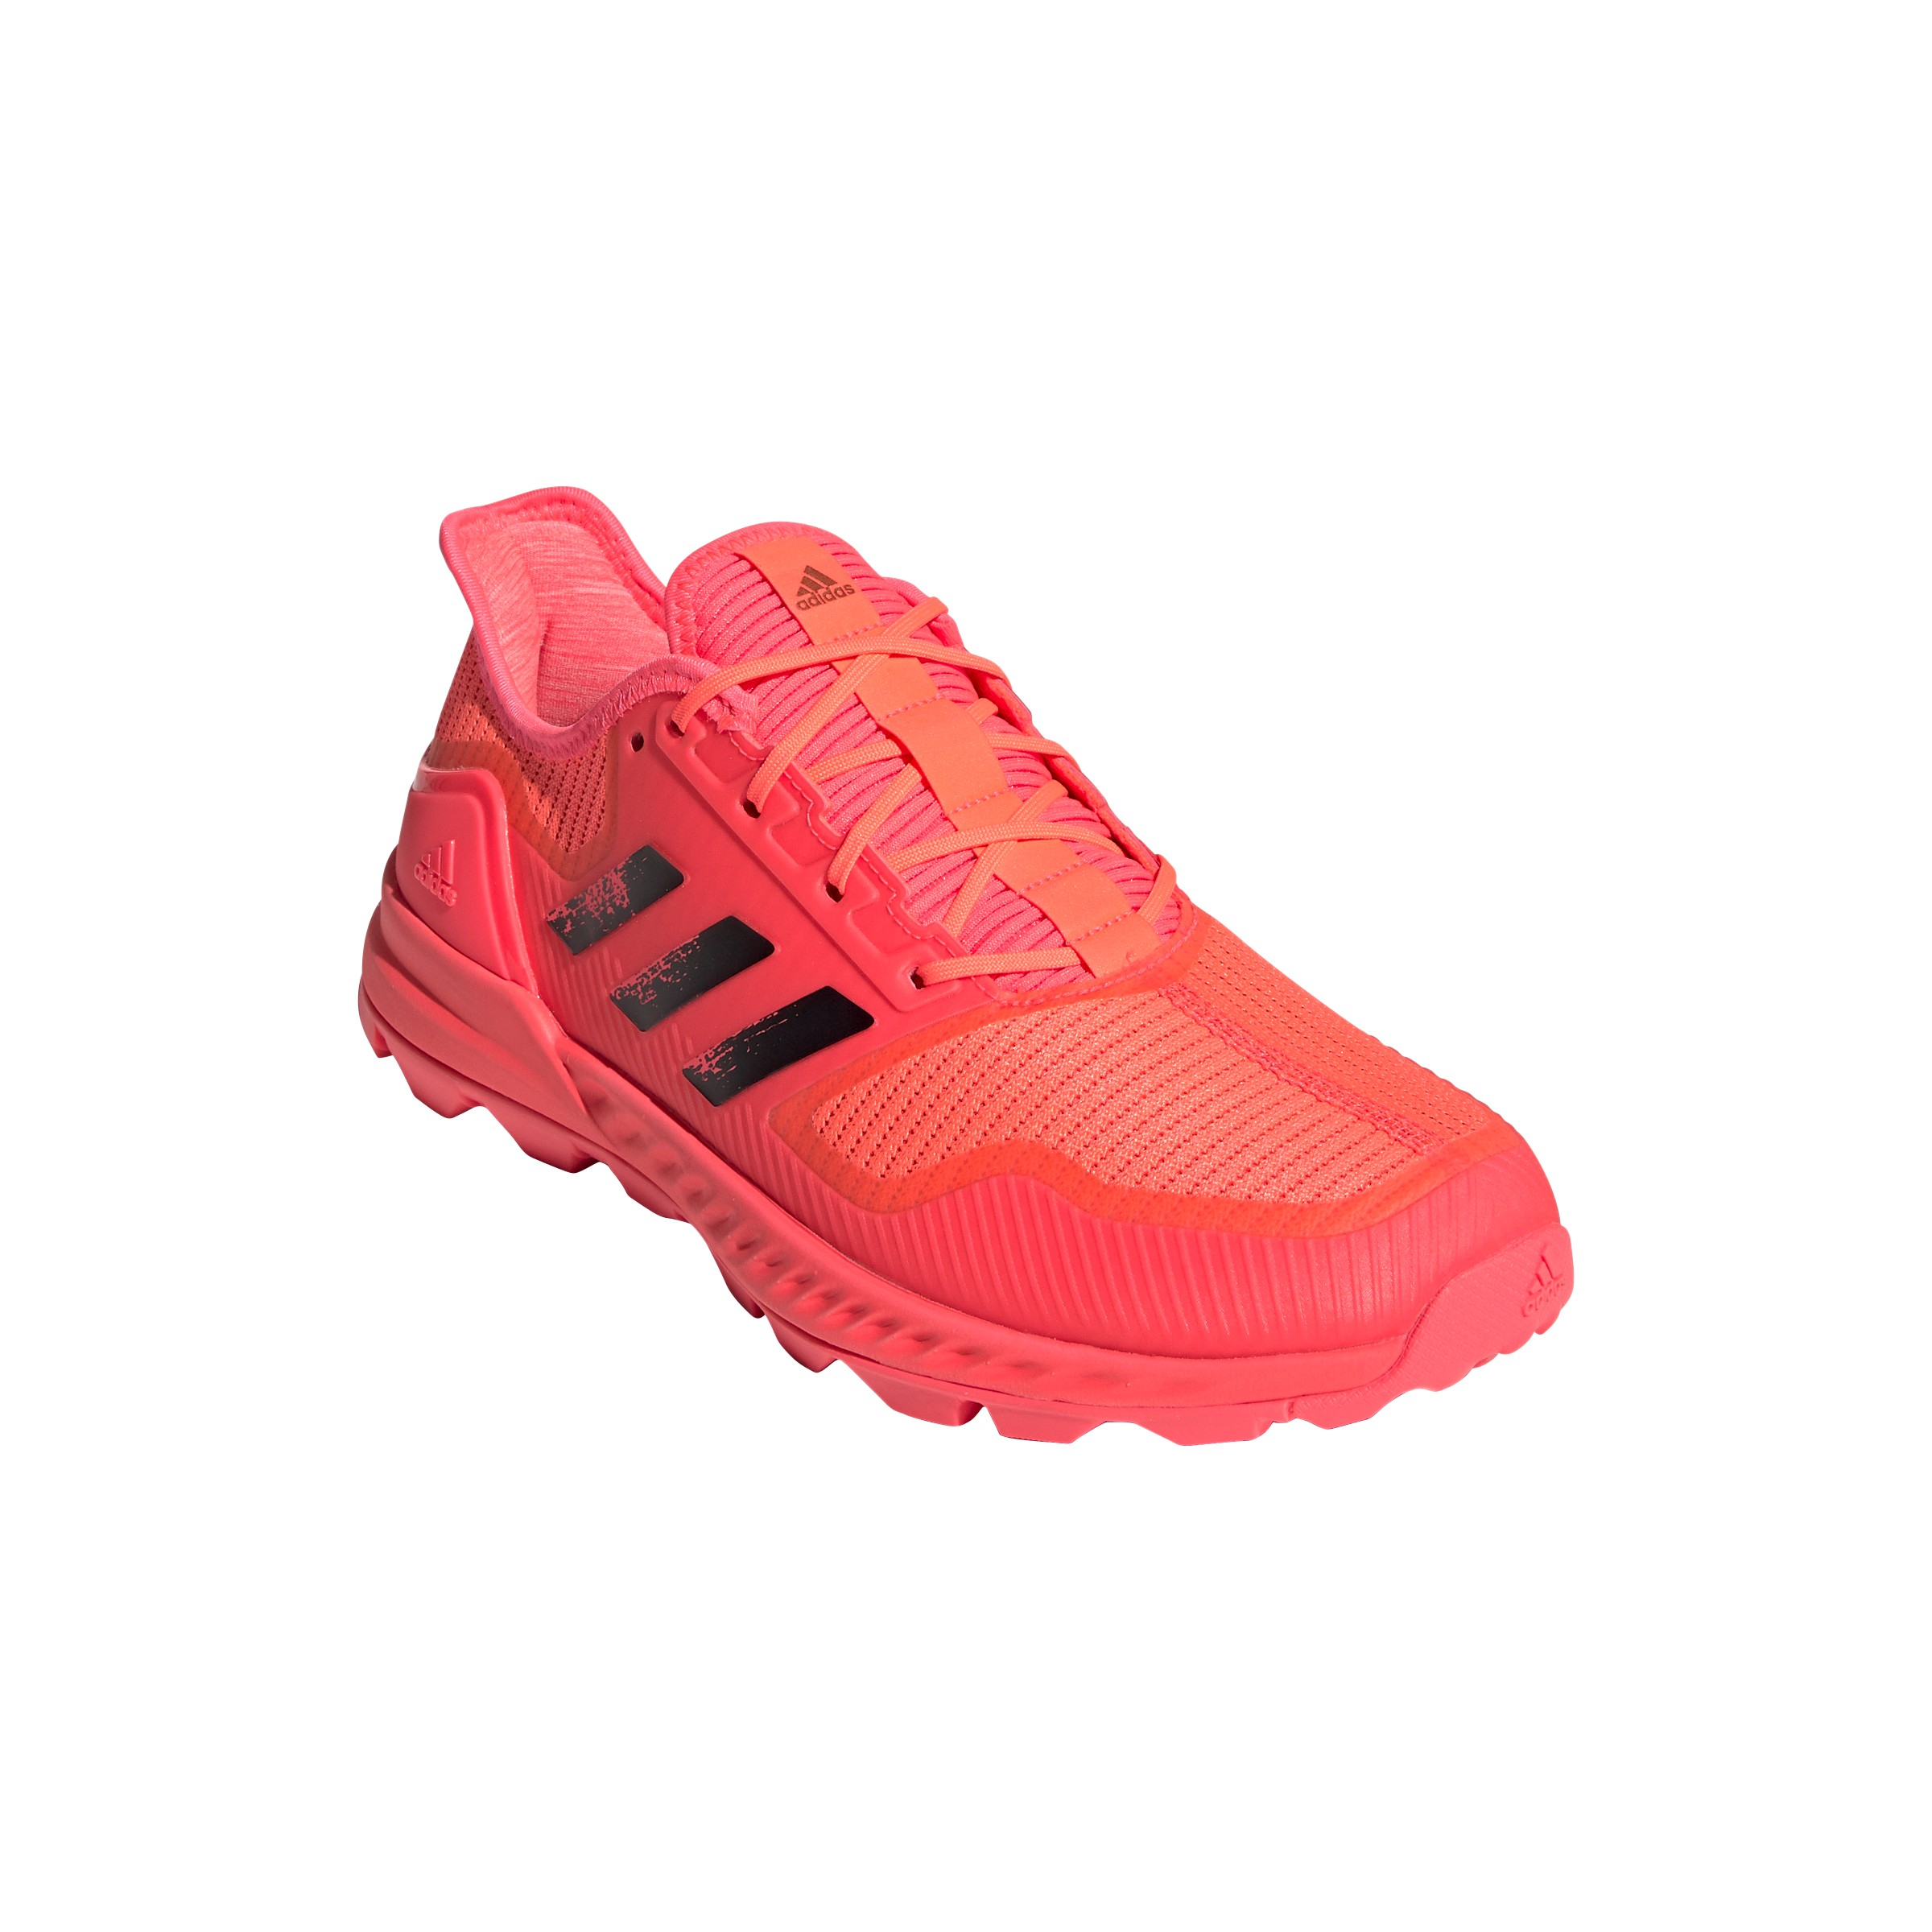 Adidas Adipower Hockey Shoes - Pink (2020/21) - Buy Now